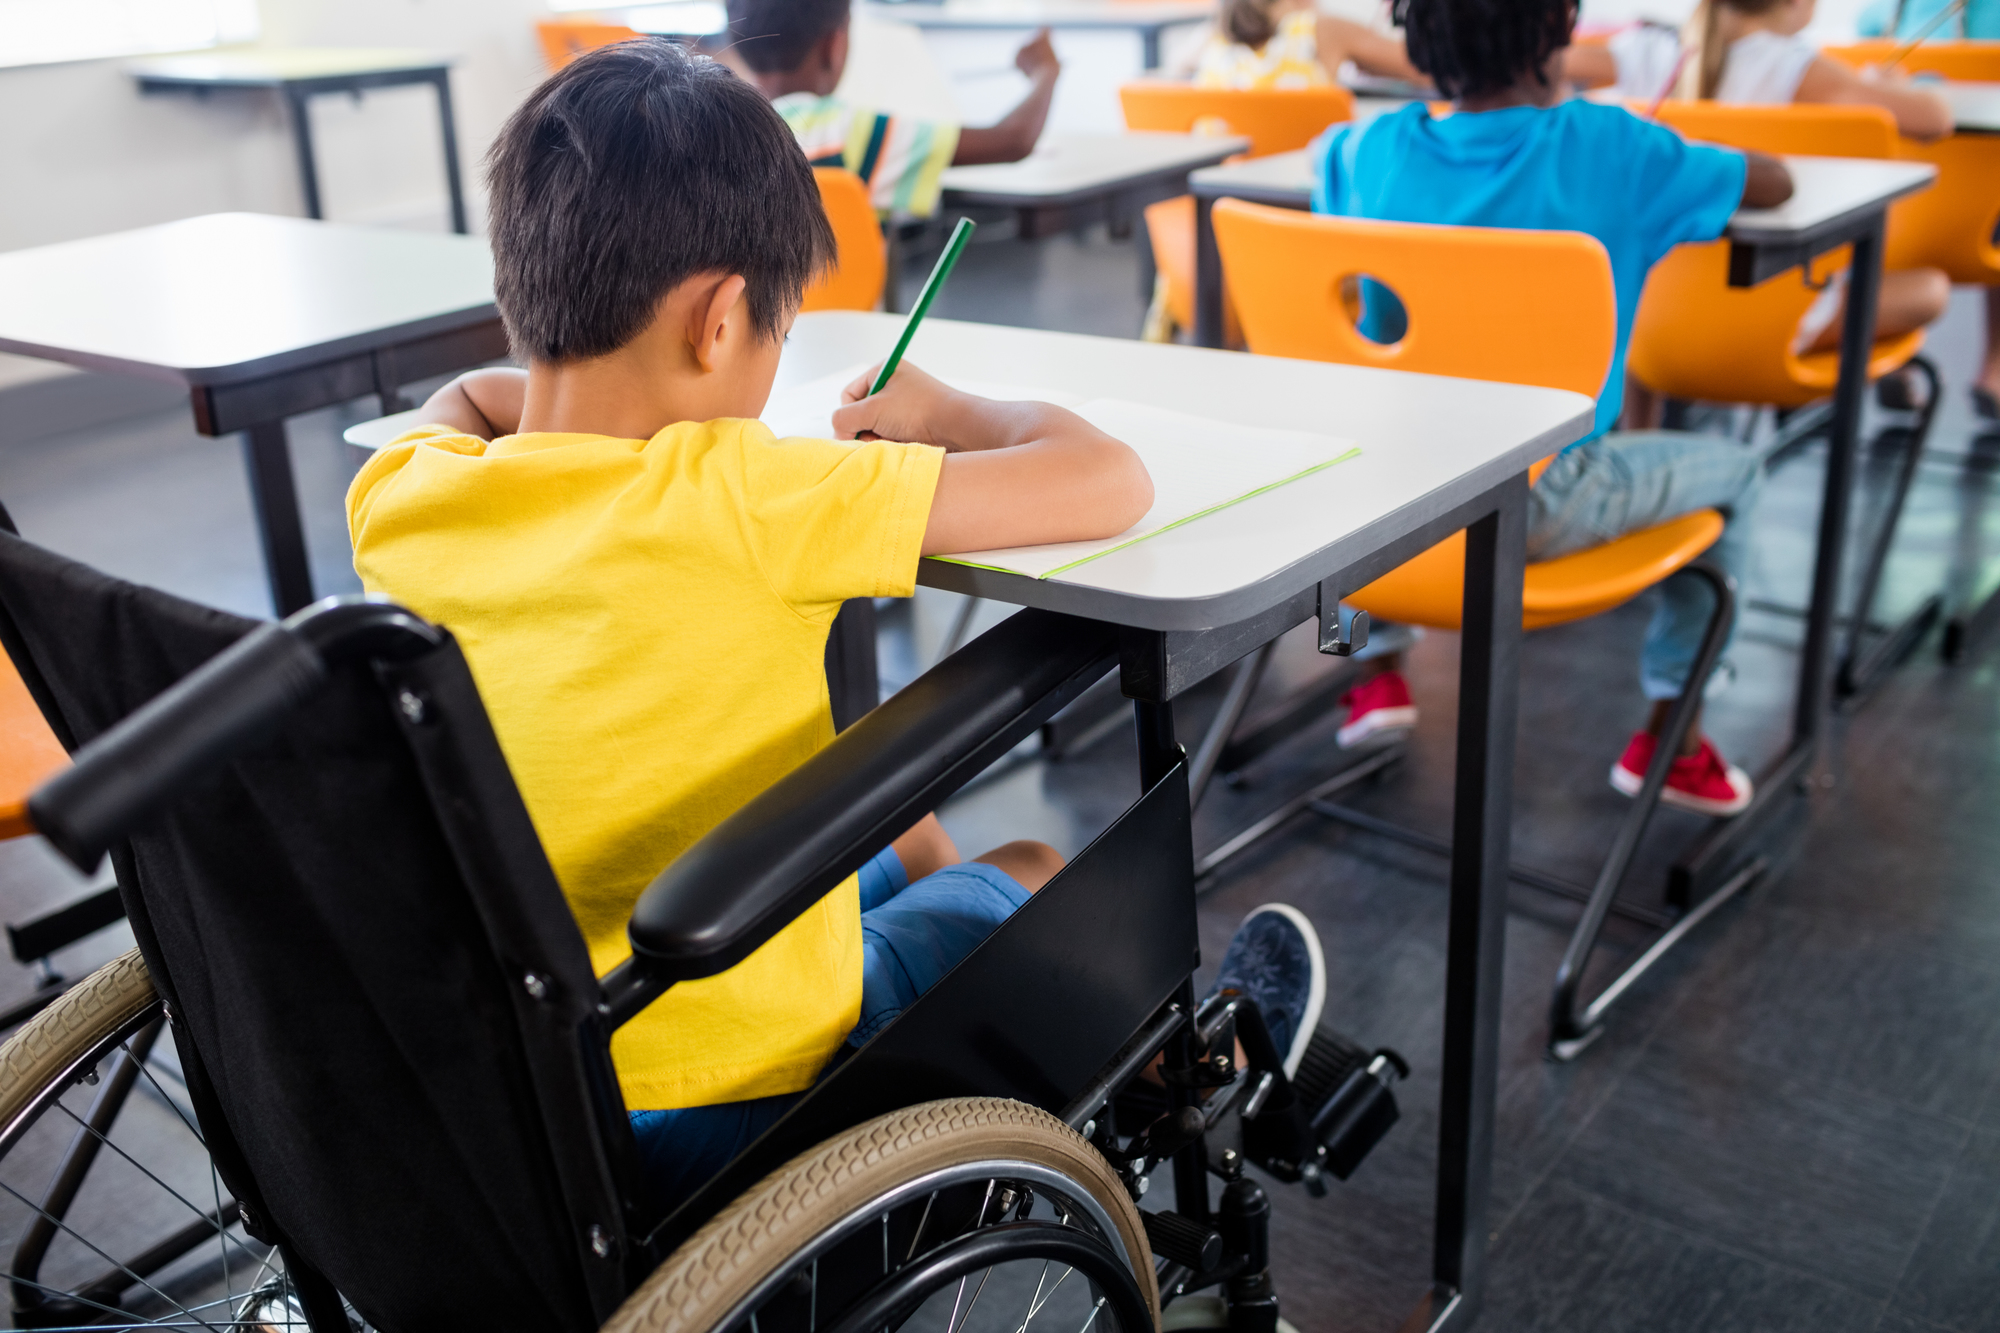 A pupil in wheel chair working at his desk at school